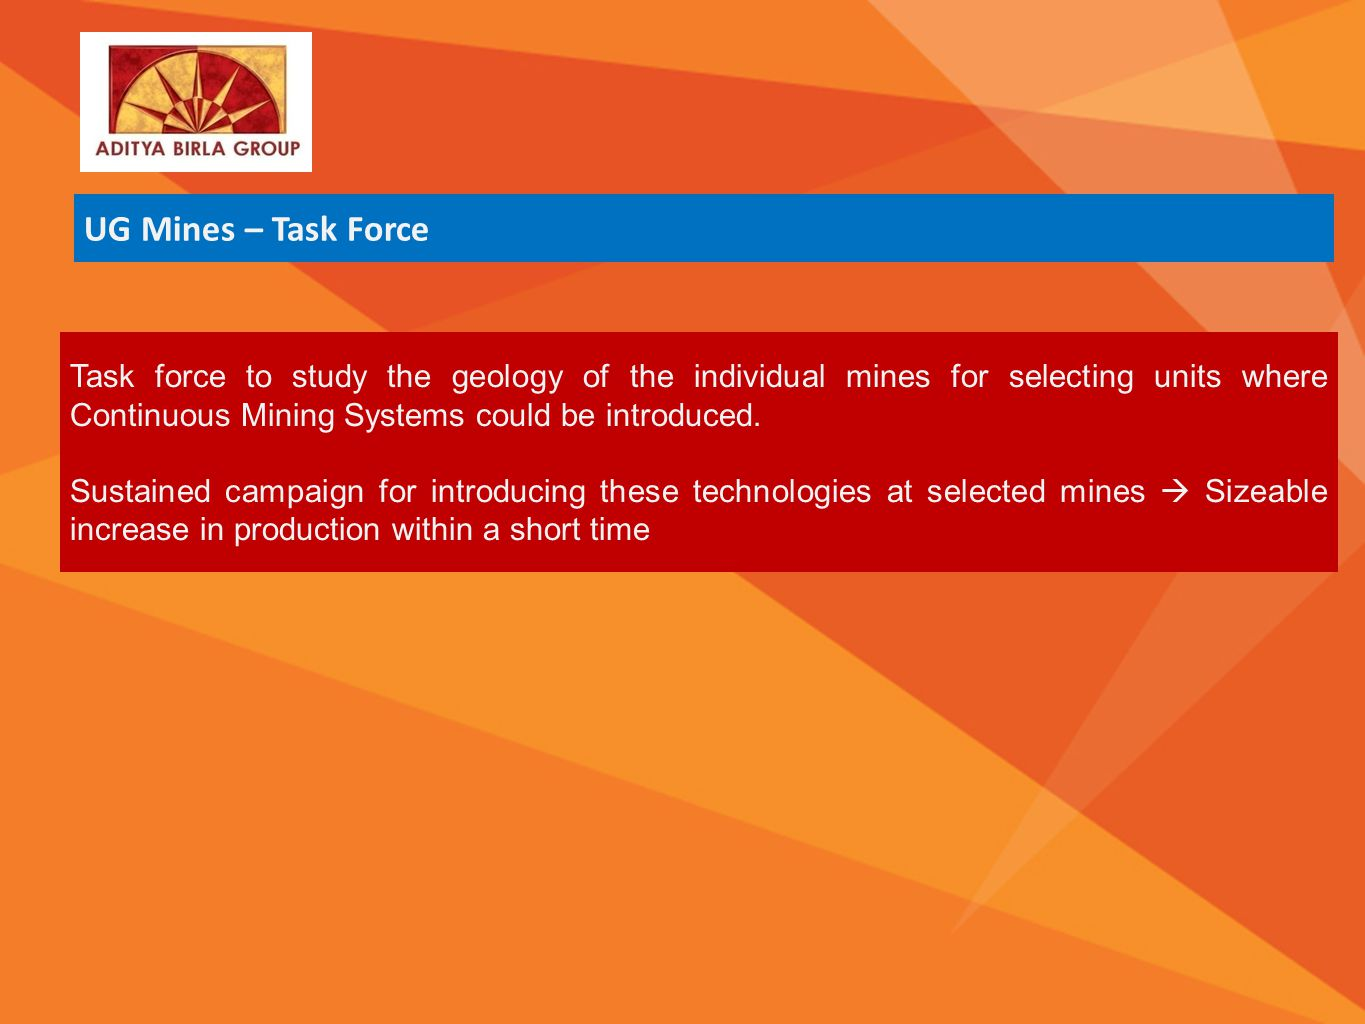 Business Sectors At a glance Vision & Values SustainabilitySocial ResponsibilityResearch & Development ADITYA BIRLA GROUP Task force to study the geol